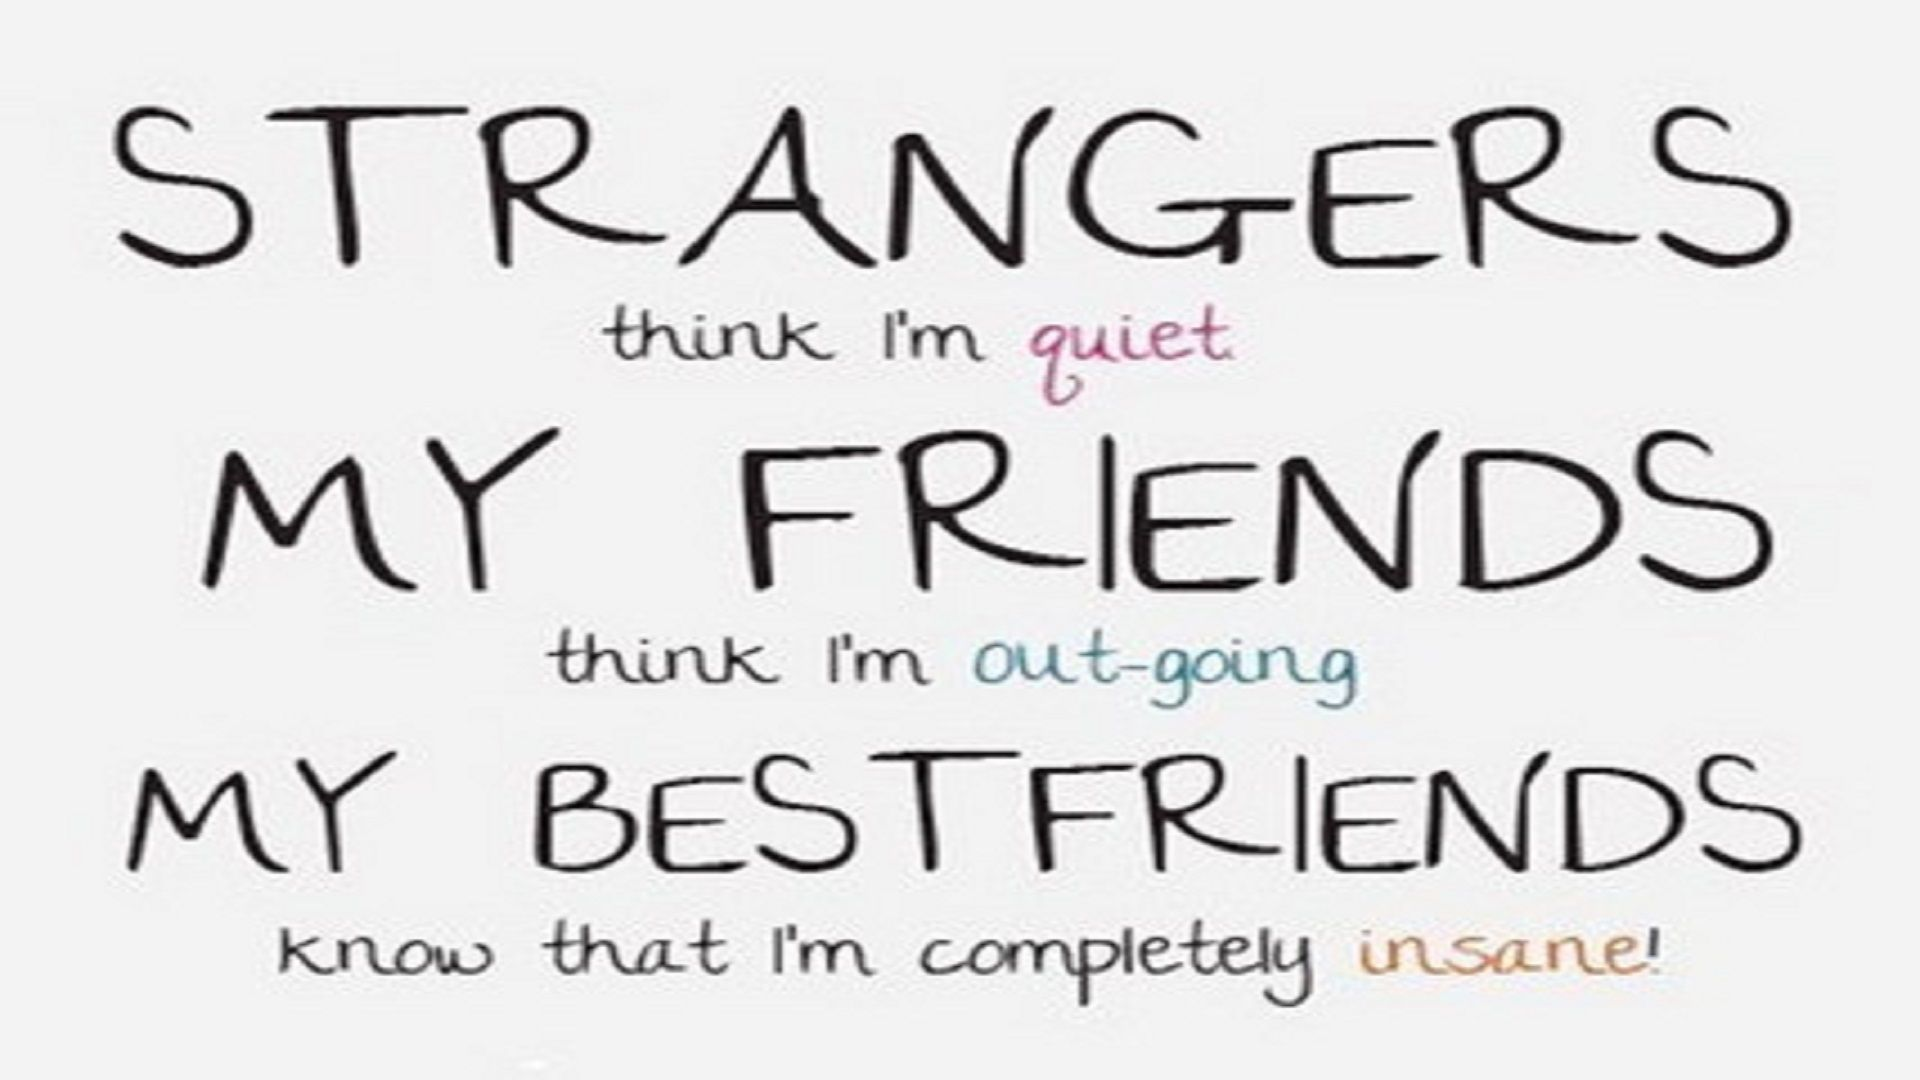 cool friendship quotes with wallpaper cool friendship quotes with wallpaper download cool friendship quotes with